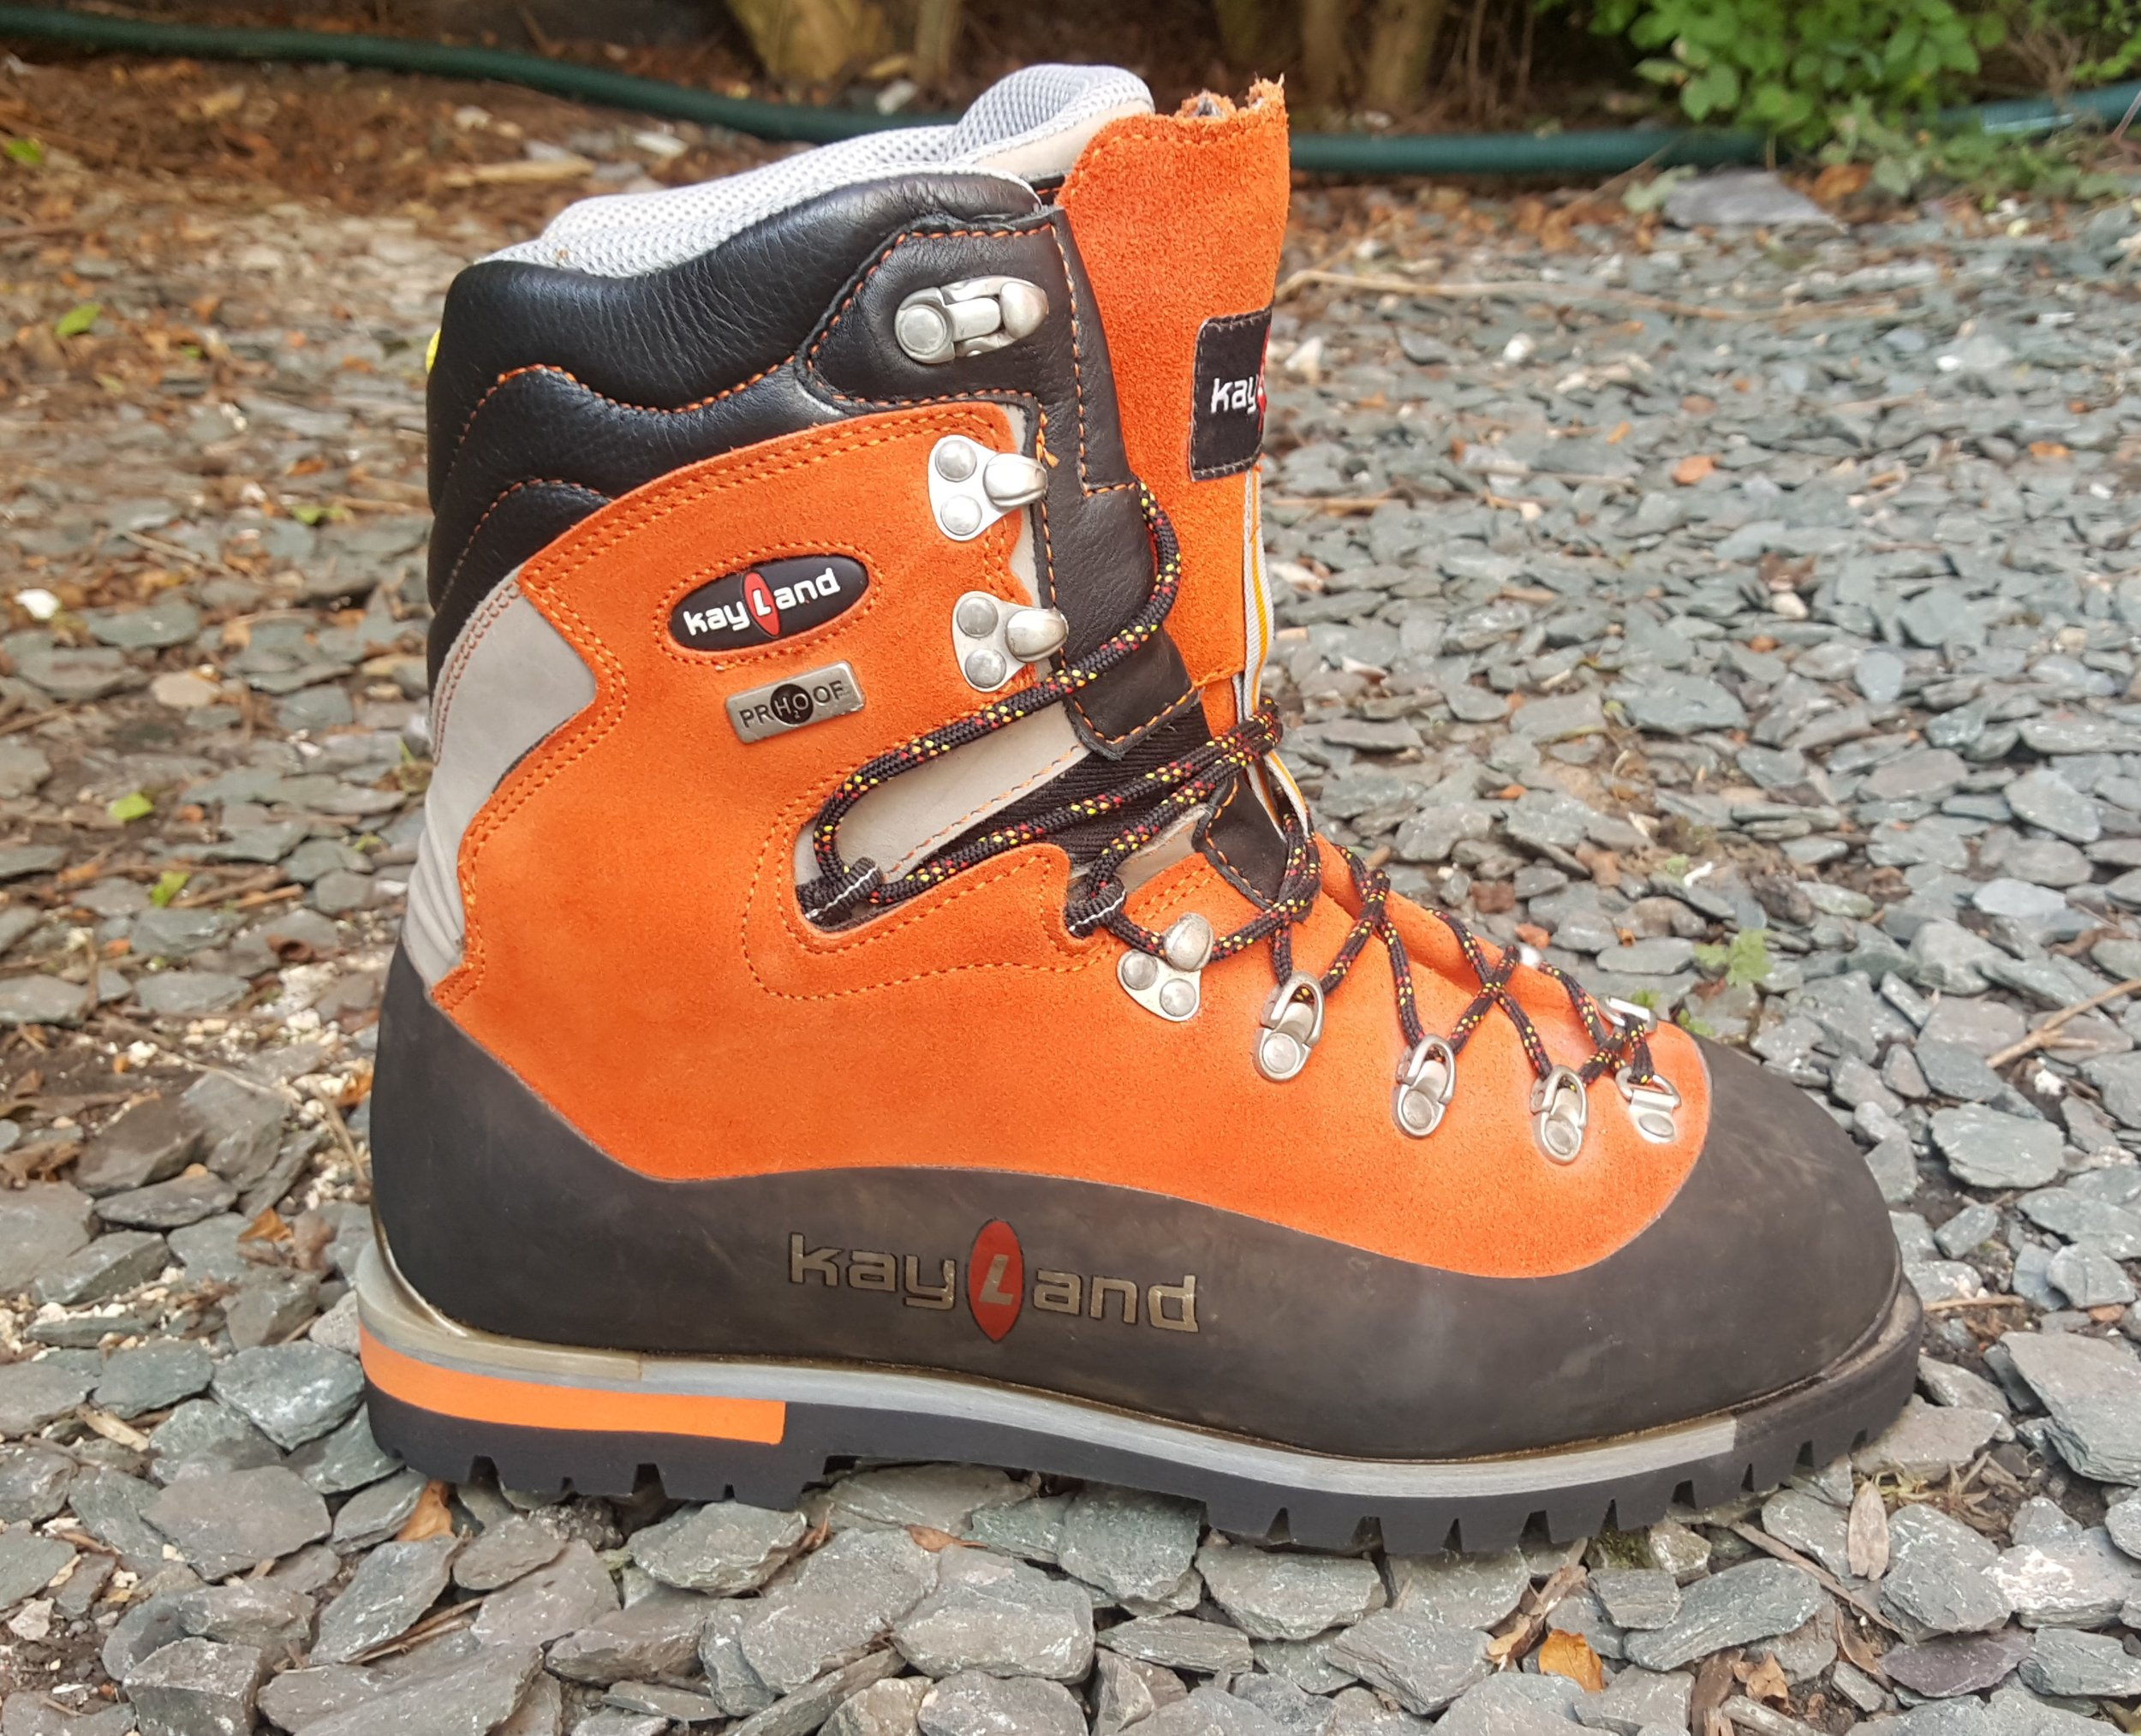 A typical B3 single boot